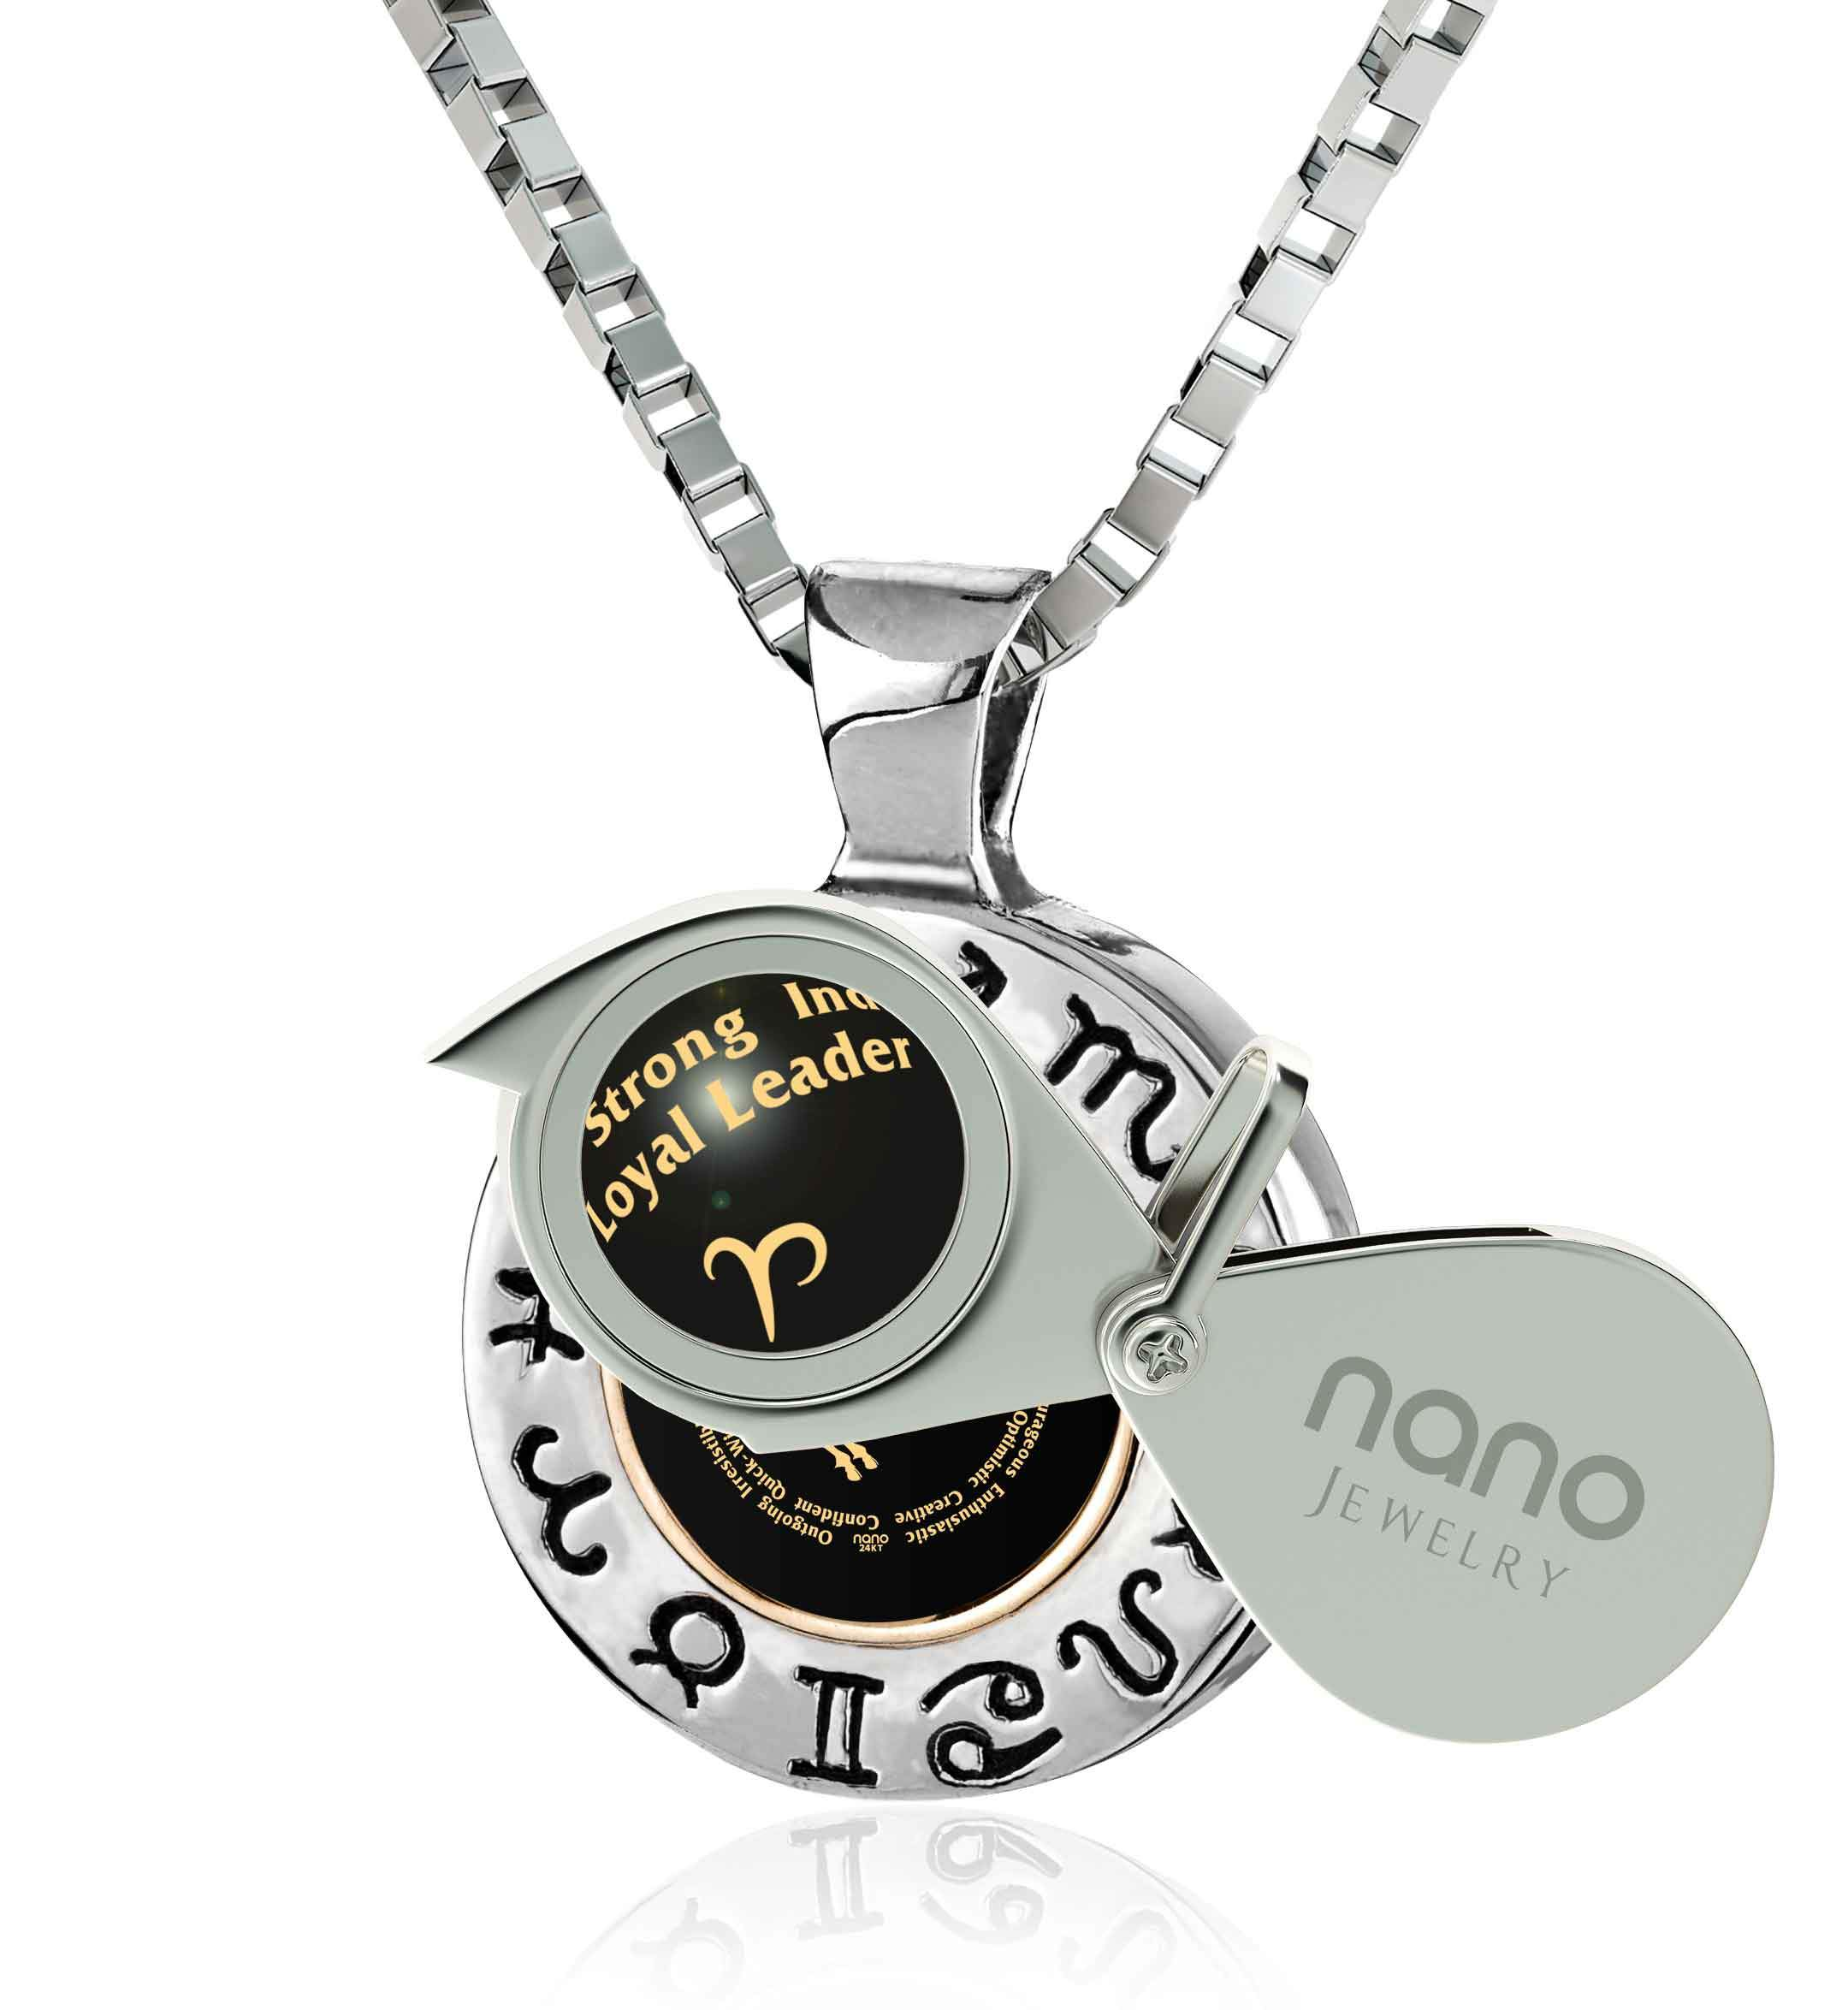 Cool Man Gifts: Aries Unique Silver Chain with Aries Characteristic Pendant, Boyfriend Christmas Ideas